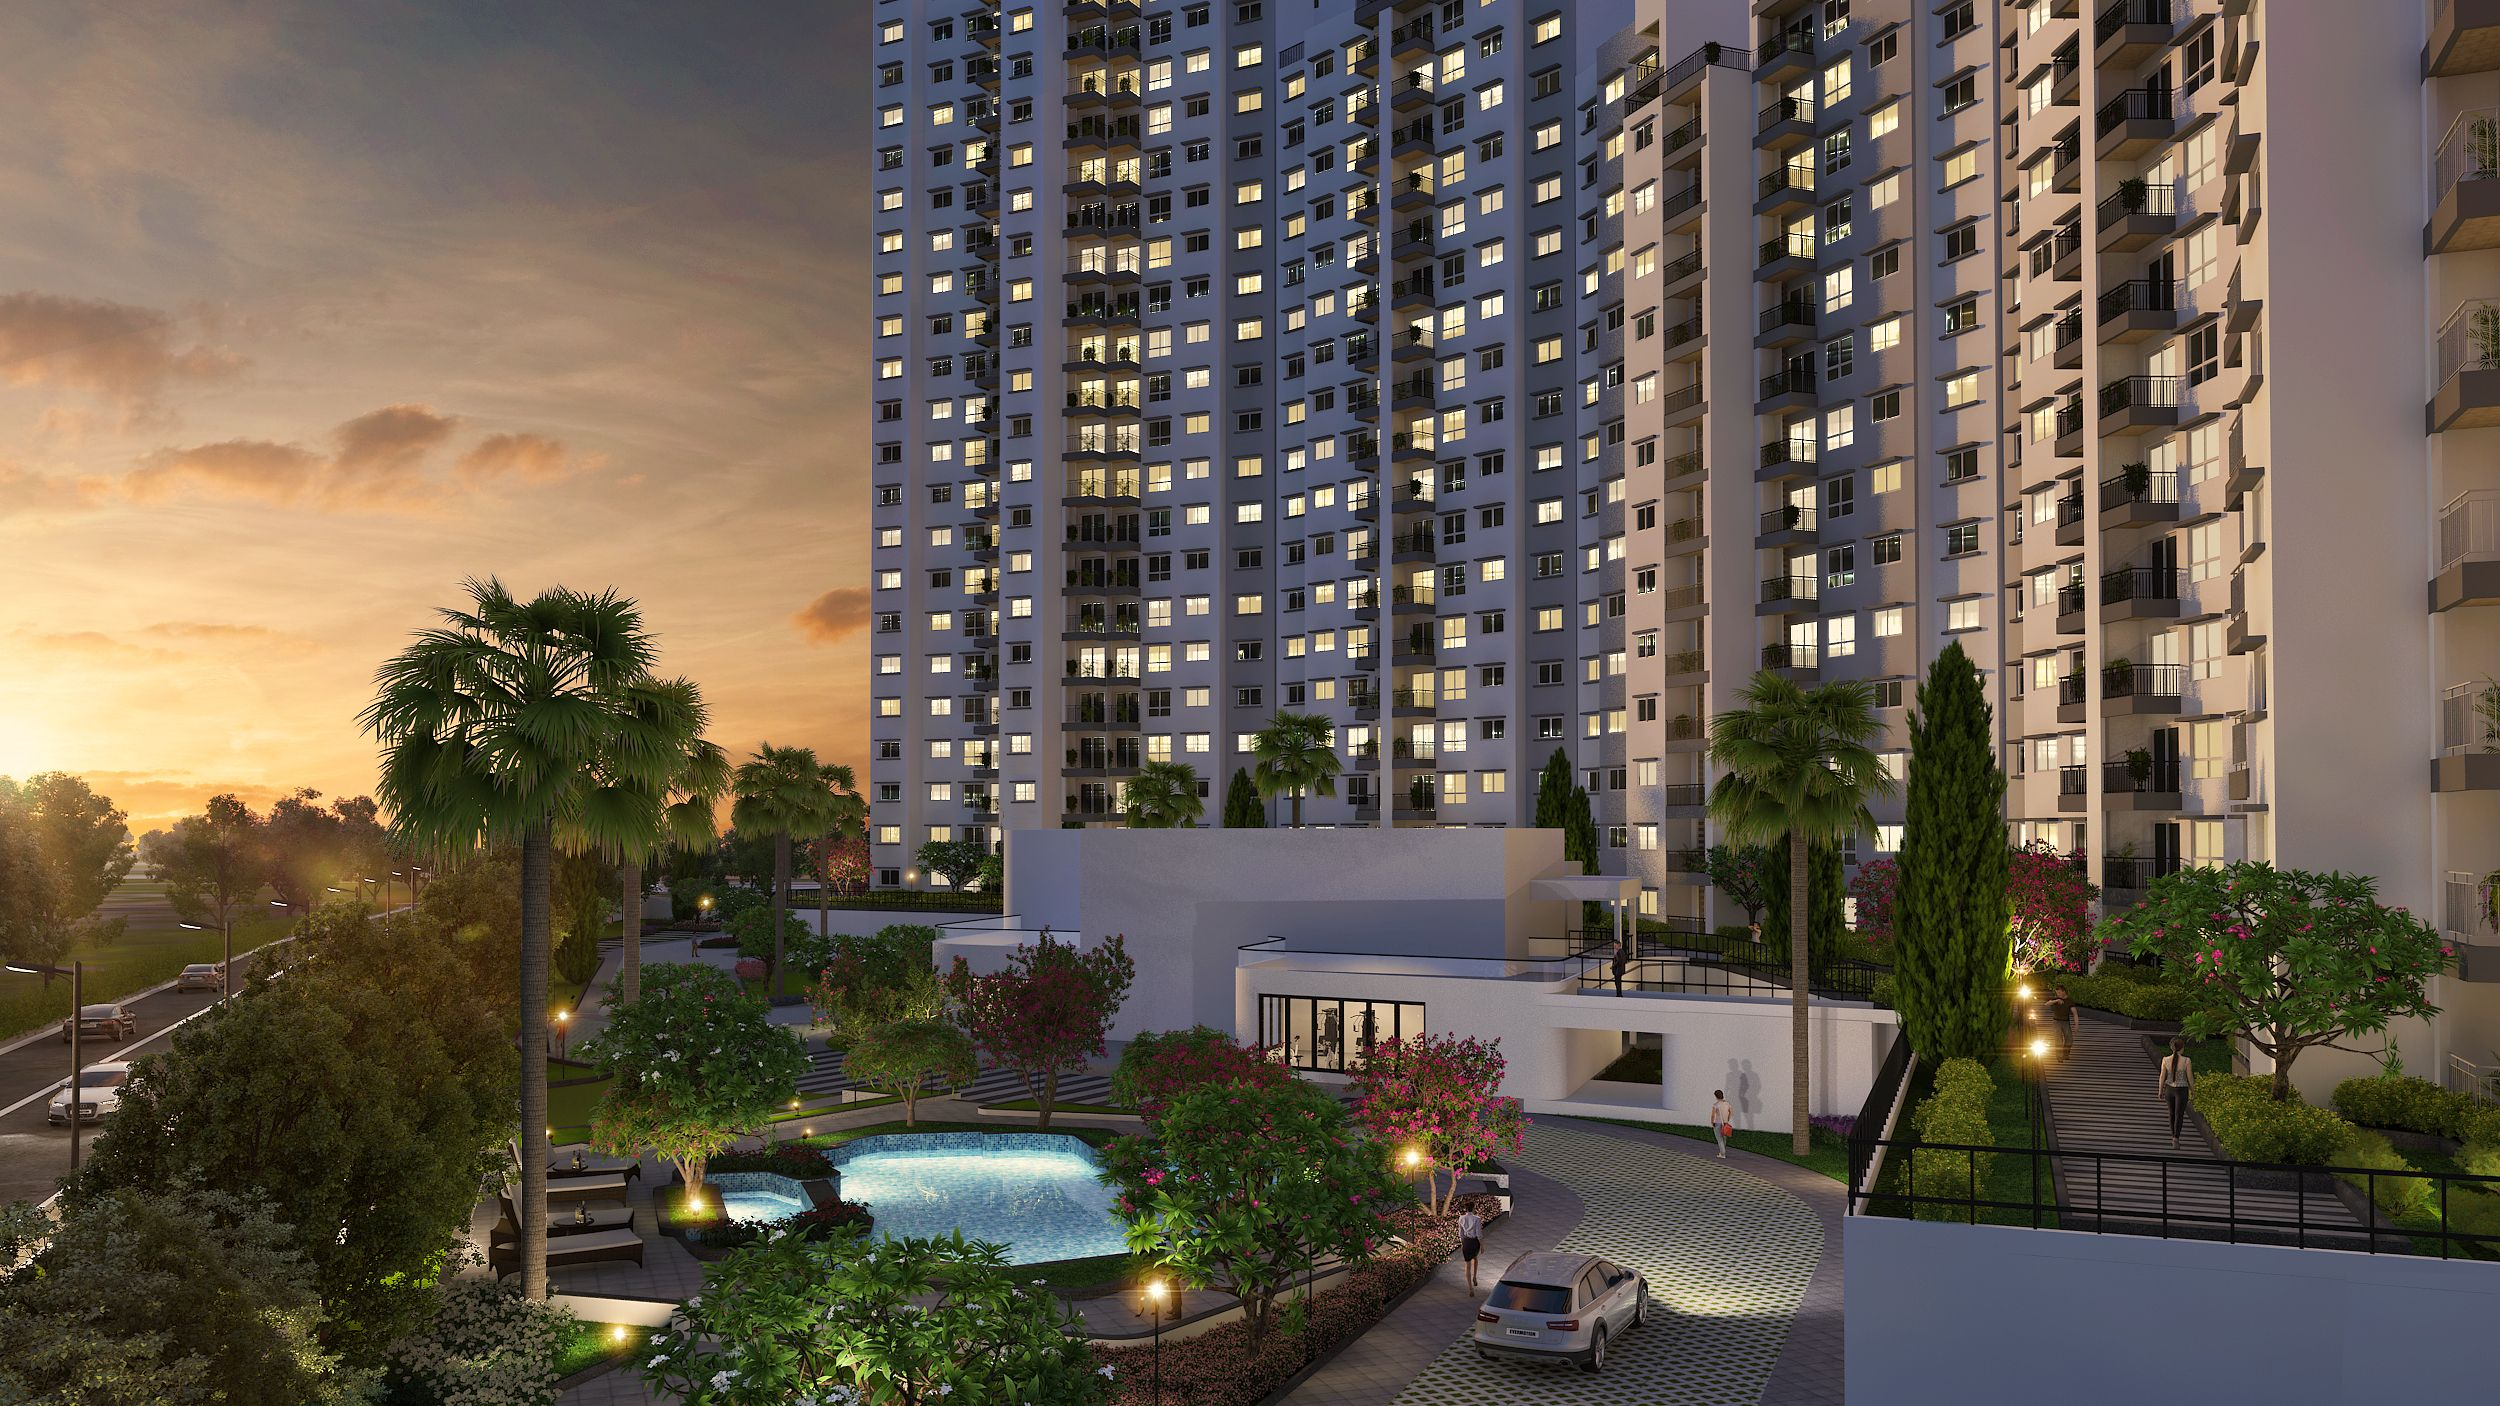 Godrej 24 at Sarjapur Road is a new residential project in